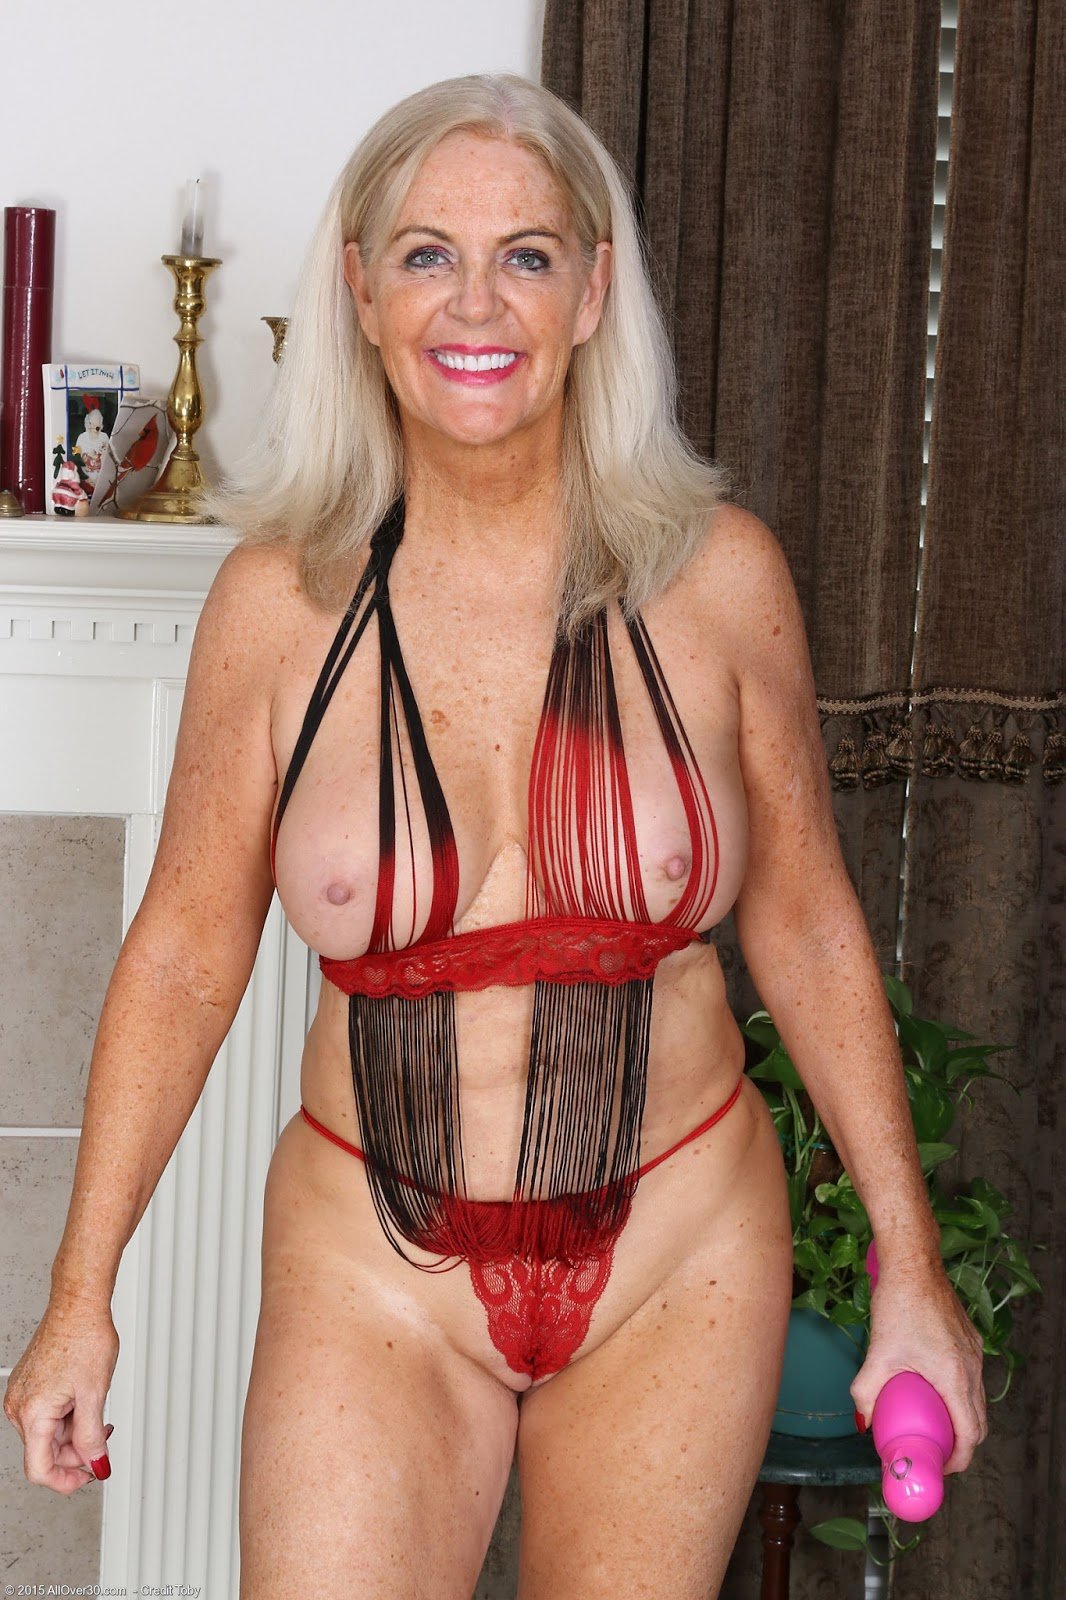 66 year old sub linda - 2 7